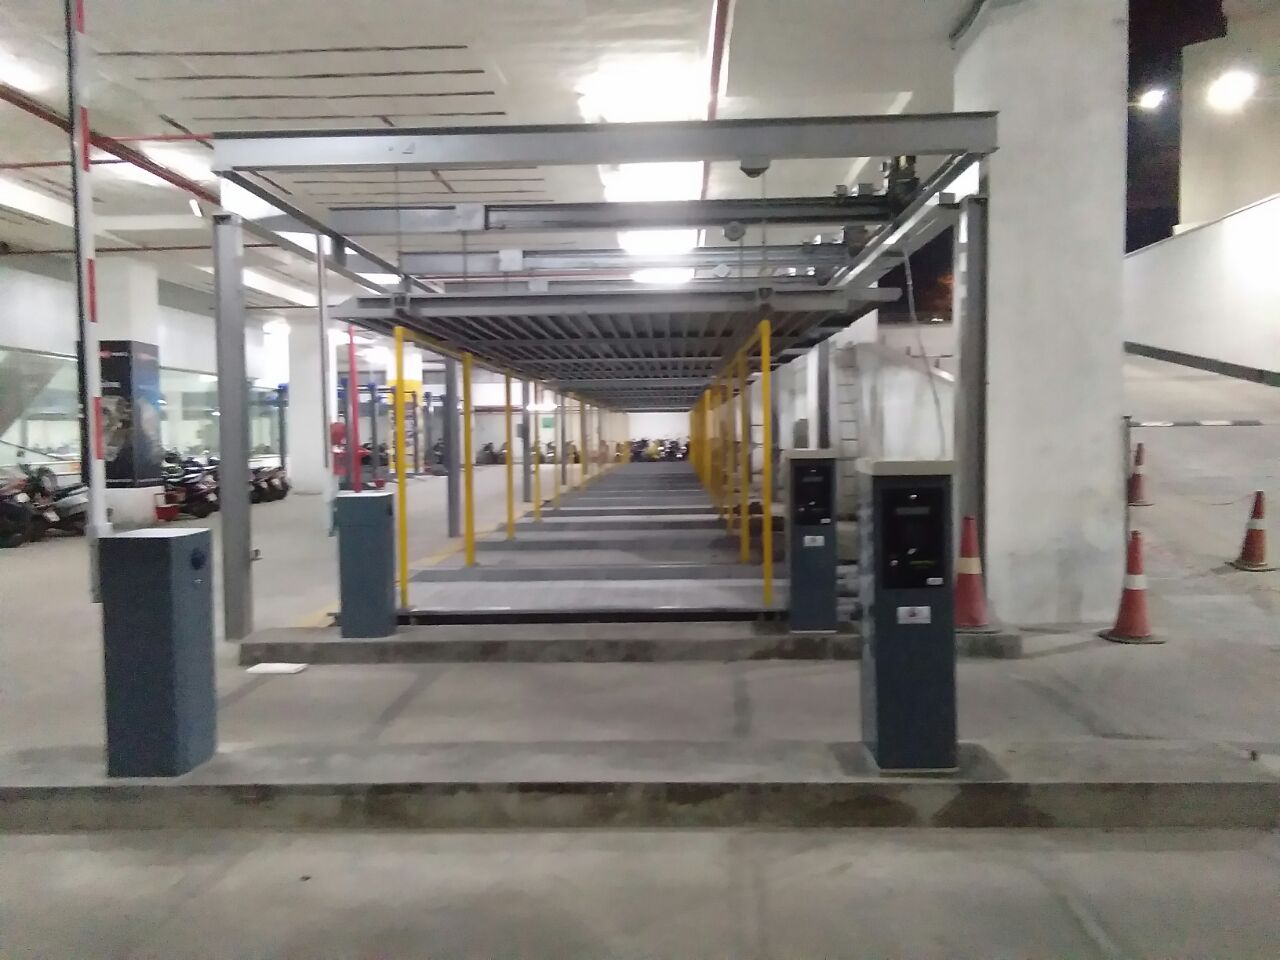 Parking systems can